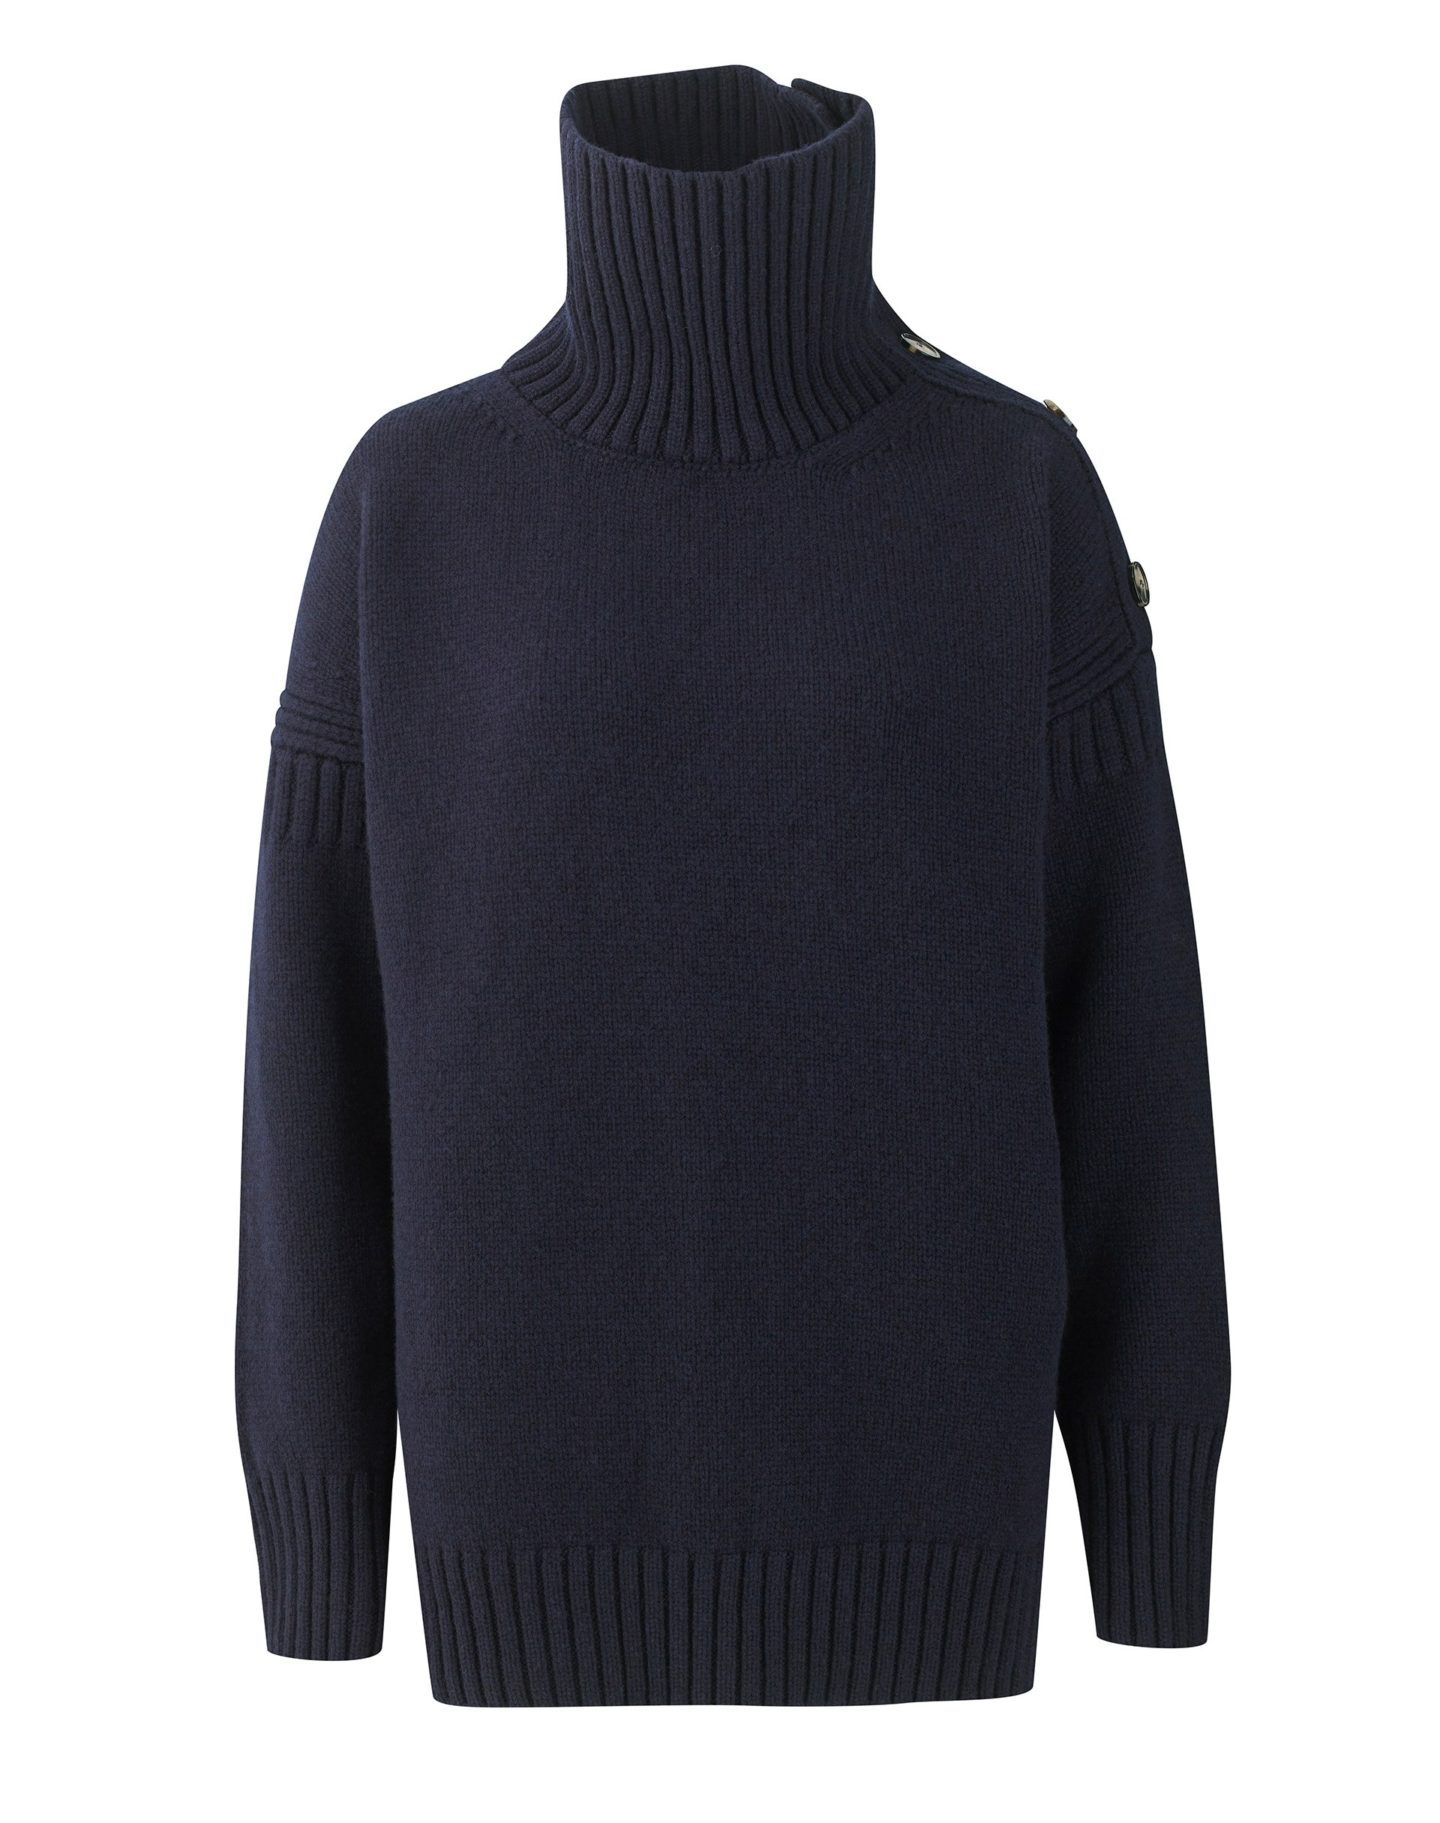 Navy Guernsey sweater